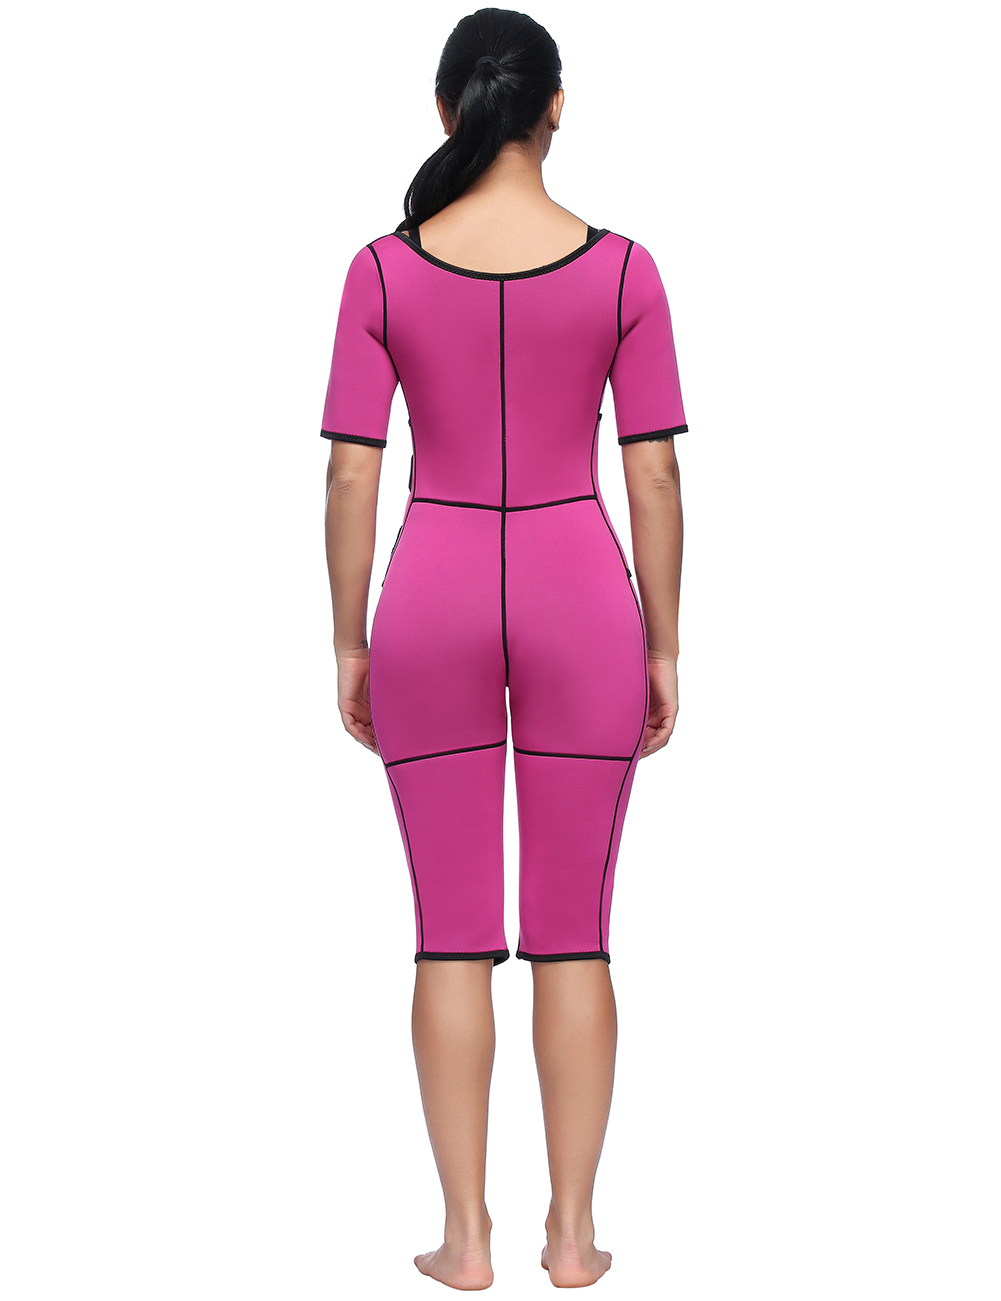 //cdn.affectcloud.com/feelingirldress/upload/imgs/Shapewear/Body_Shaper/MT190066-RD2/MT190066-RD2-202002275e571856bef02.jpg